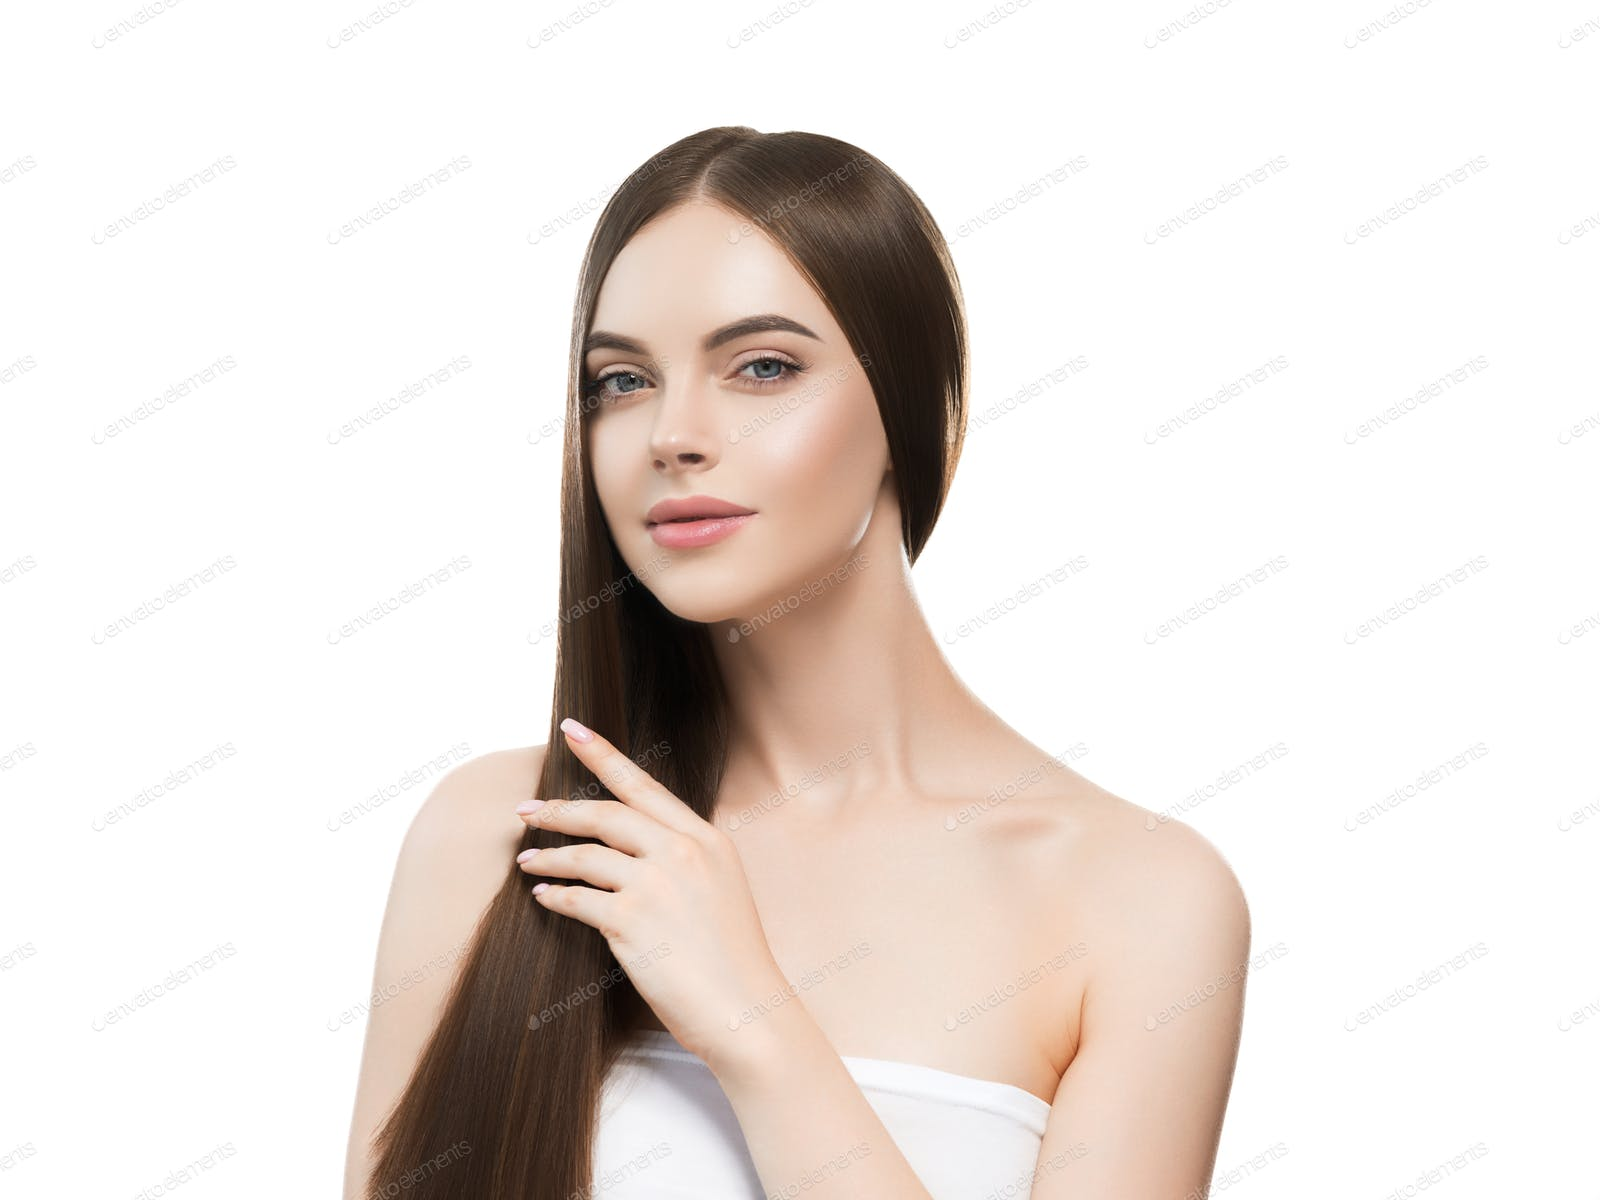 Smooth Hairstyle Girl Beautiful Skin Care Portrait Photo By Kiraliffe On Envato Elements